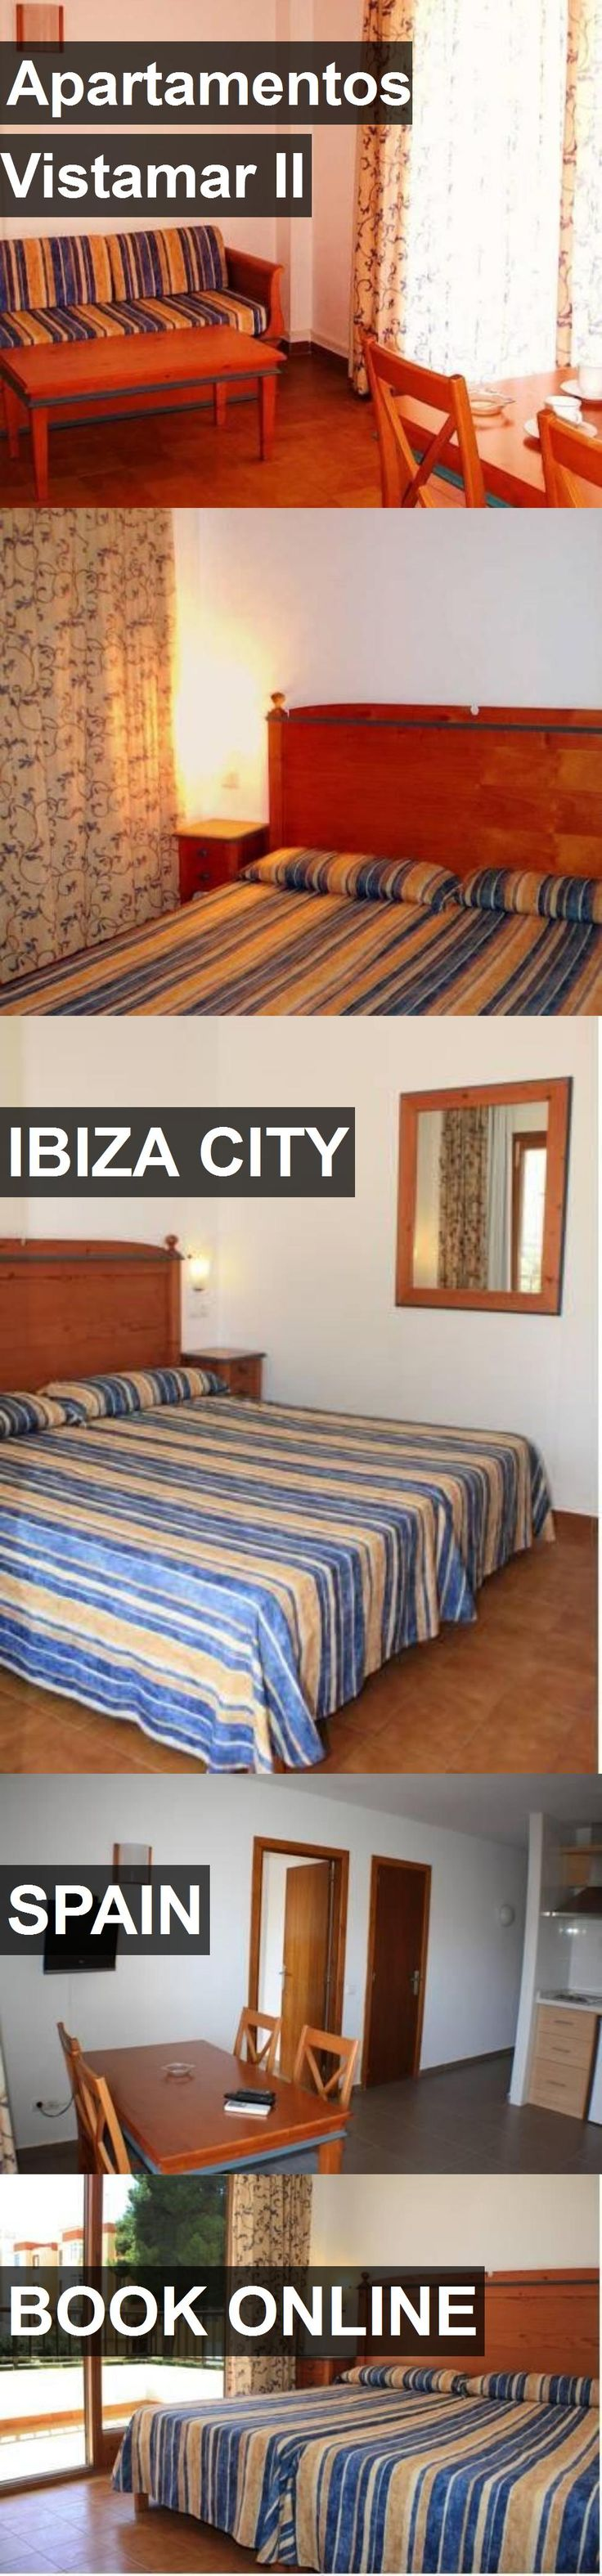 Hotel Apartamentos Vistamar II in Ibiza City, Spain. For more information, photos, reviews and best prices please follow the link. #Spain #IbizaCity #ApartamentosVistamarII #hotel #travel #vacation